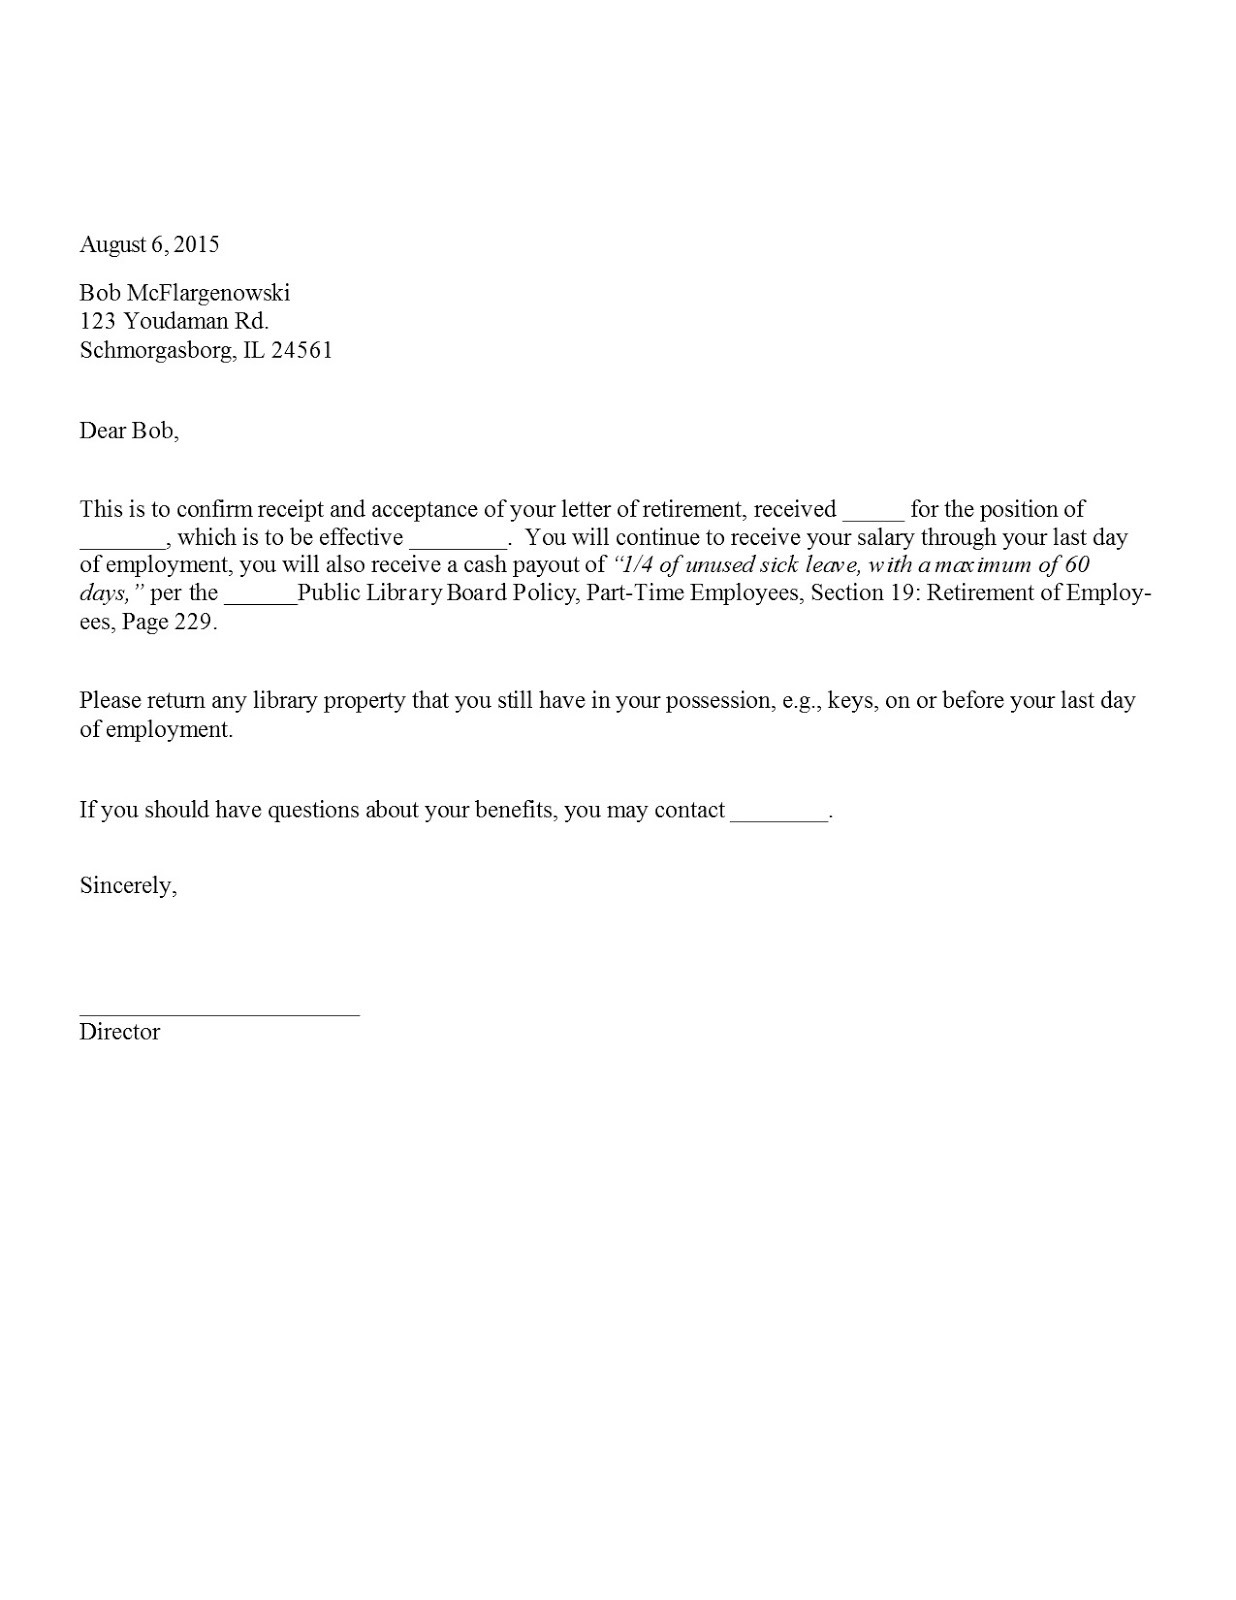 resignation letter format for librarian resume builder resignation letter format for librarian dos and donts for a resignation letter yourmomhatesthis sample retirement letters